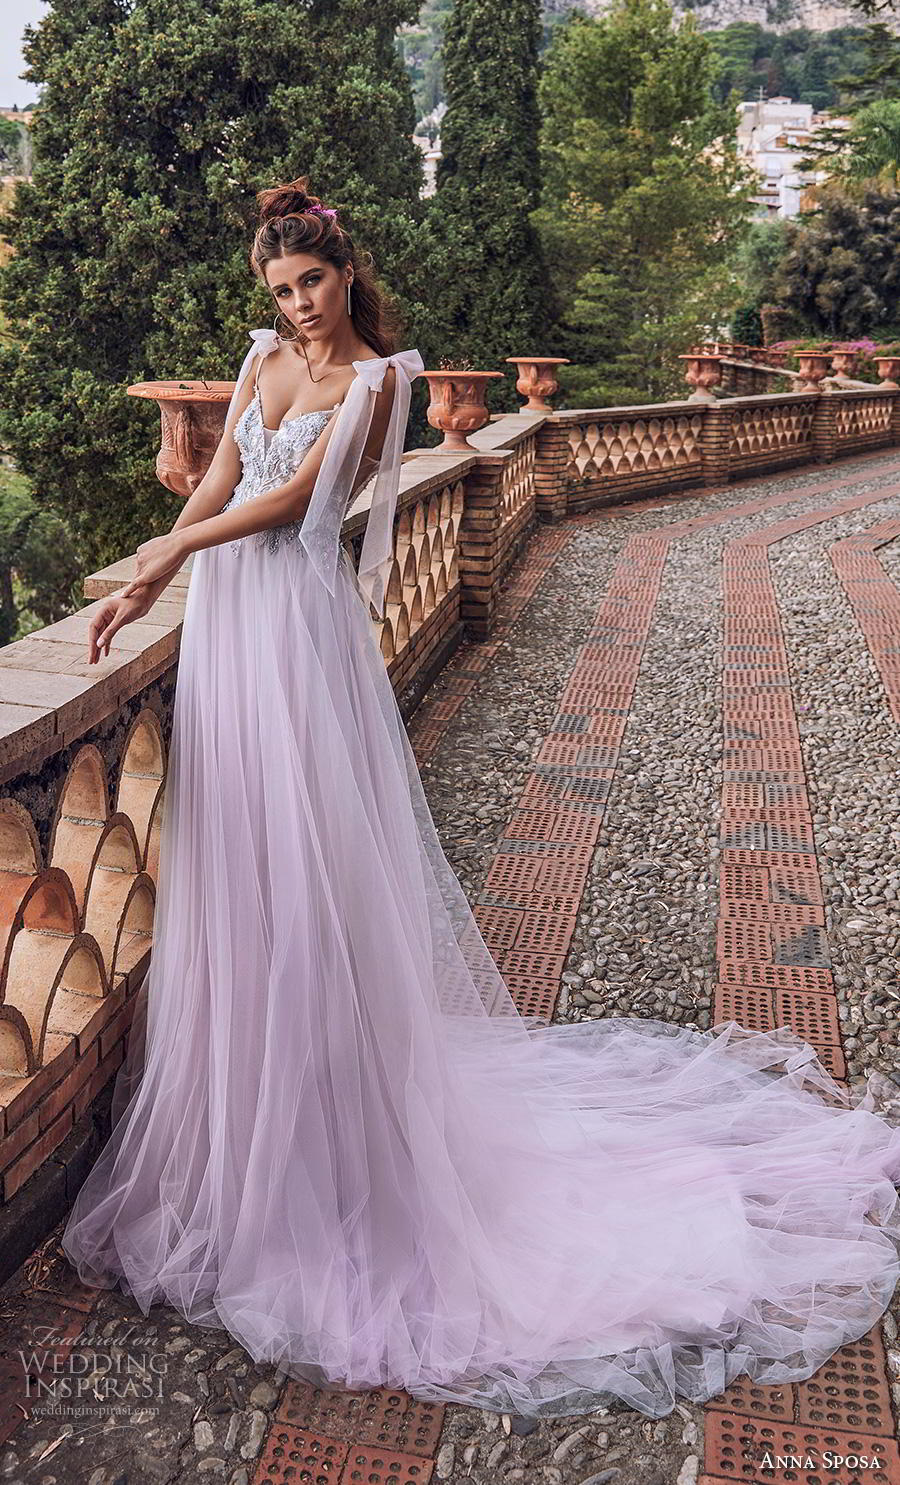 anna sposa 2019 bridal thin ribbon strap sweetheart neckline heavily embellished bodice tulle skirt romantic purple soft a  line wedding dress backless chapel train (7) mv